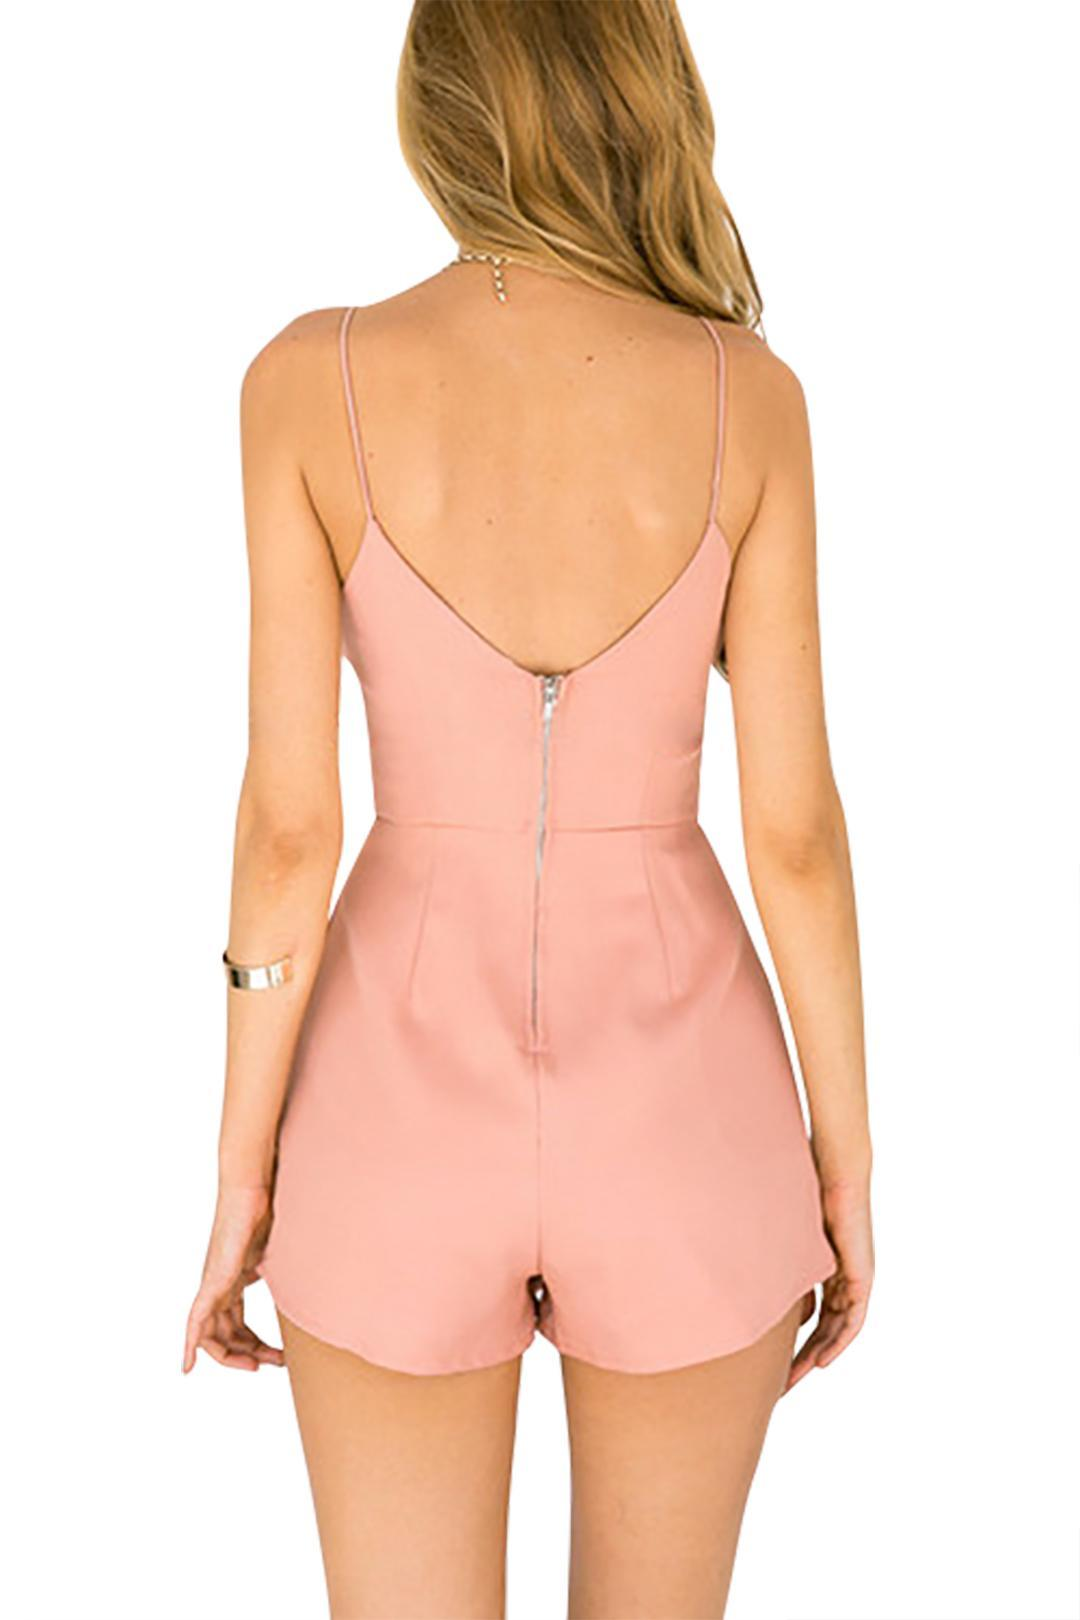 0e91d9249a Specifications of YOINS Women New High Fashion Clothing Casual Sleeveless V-neck  Playsuit with Zip back Fastening